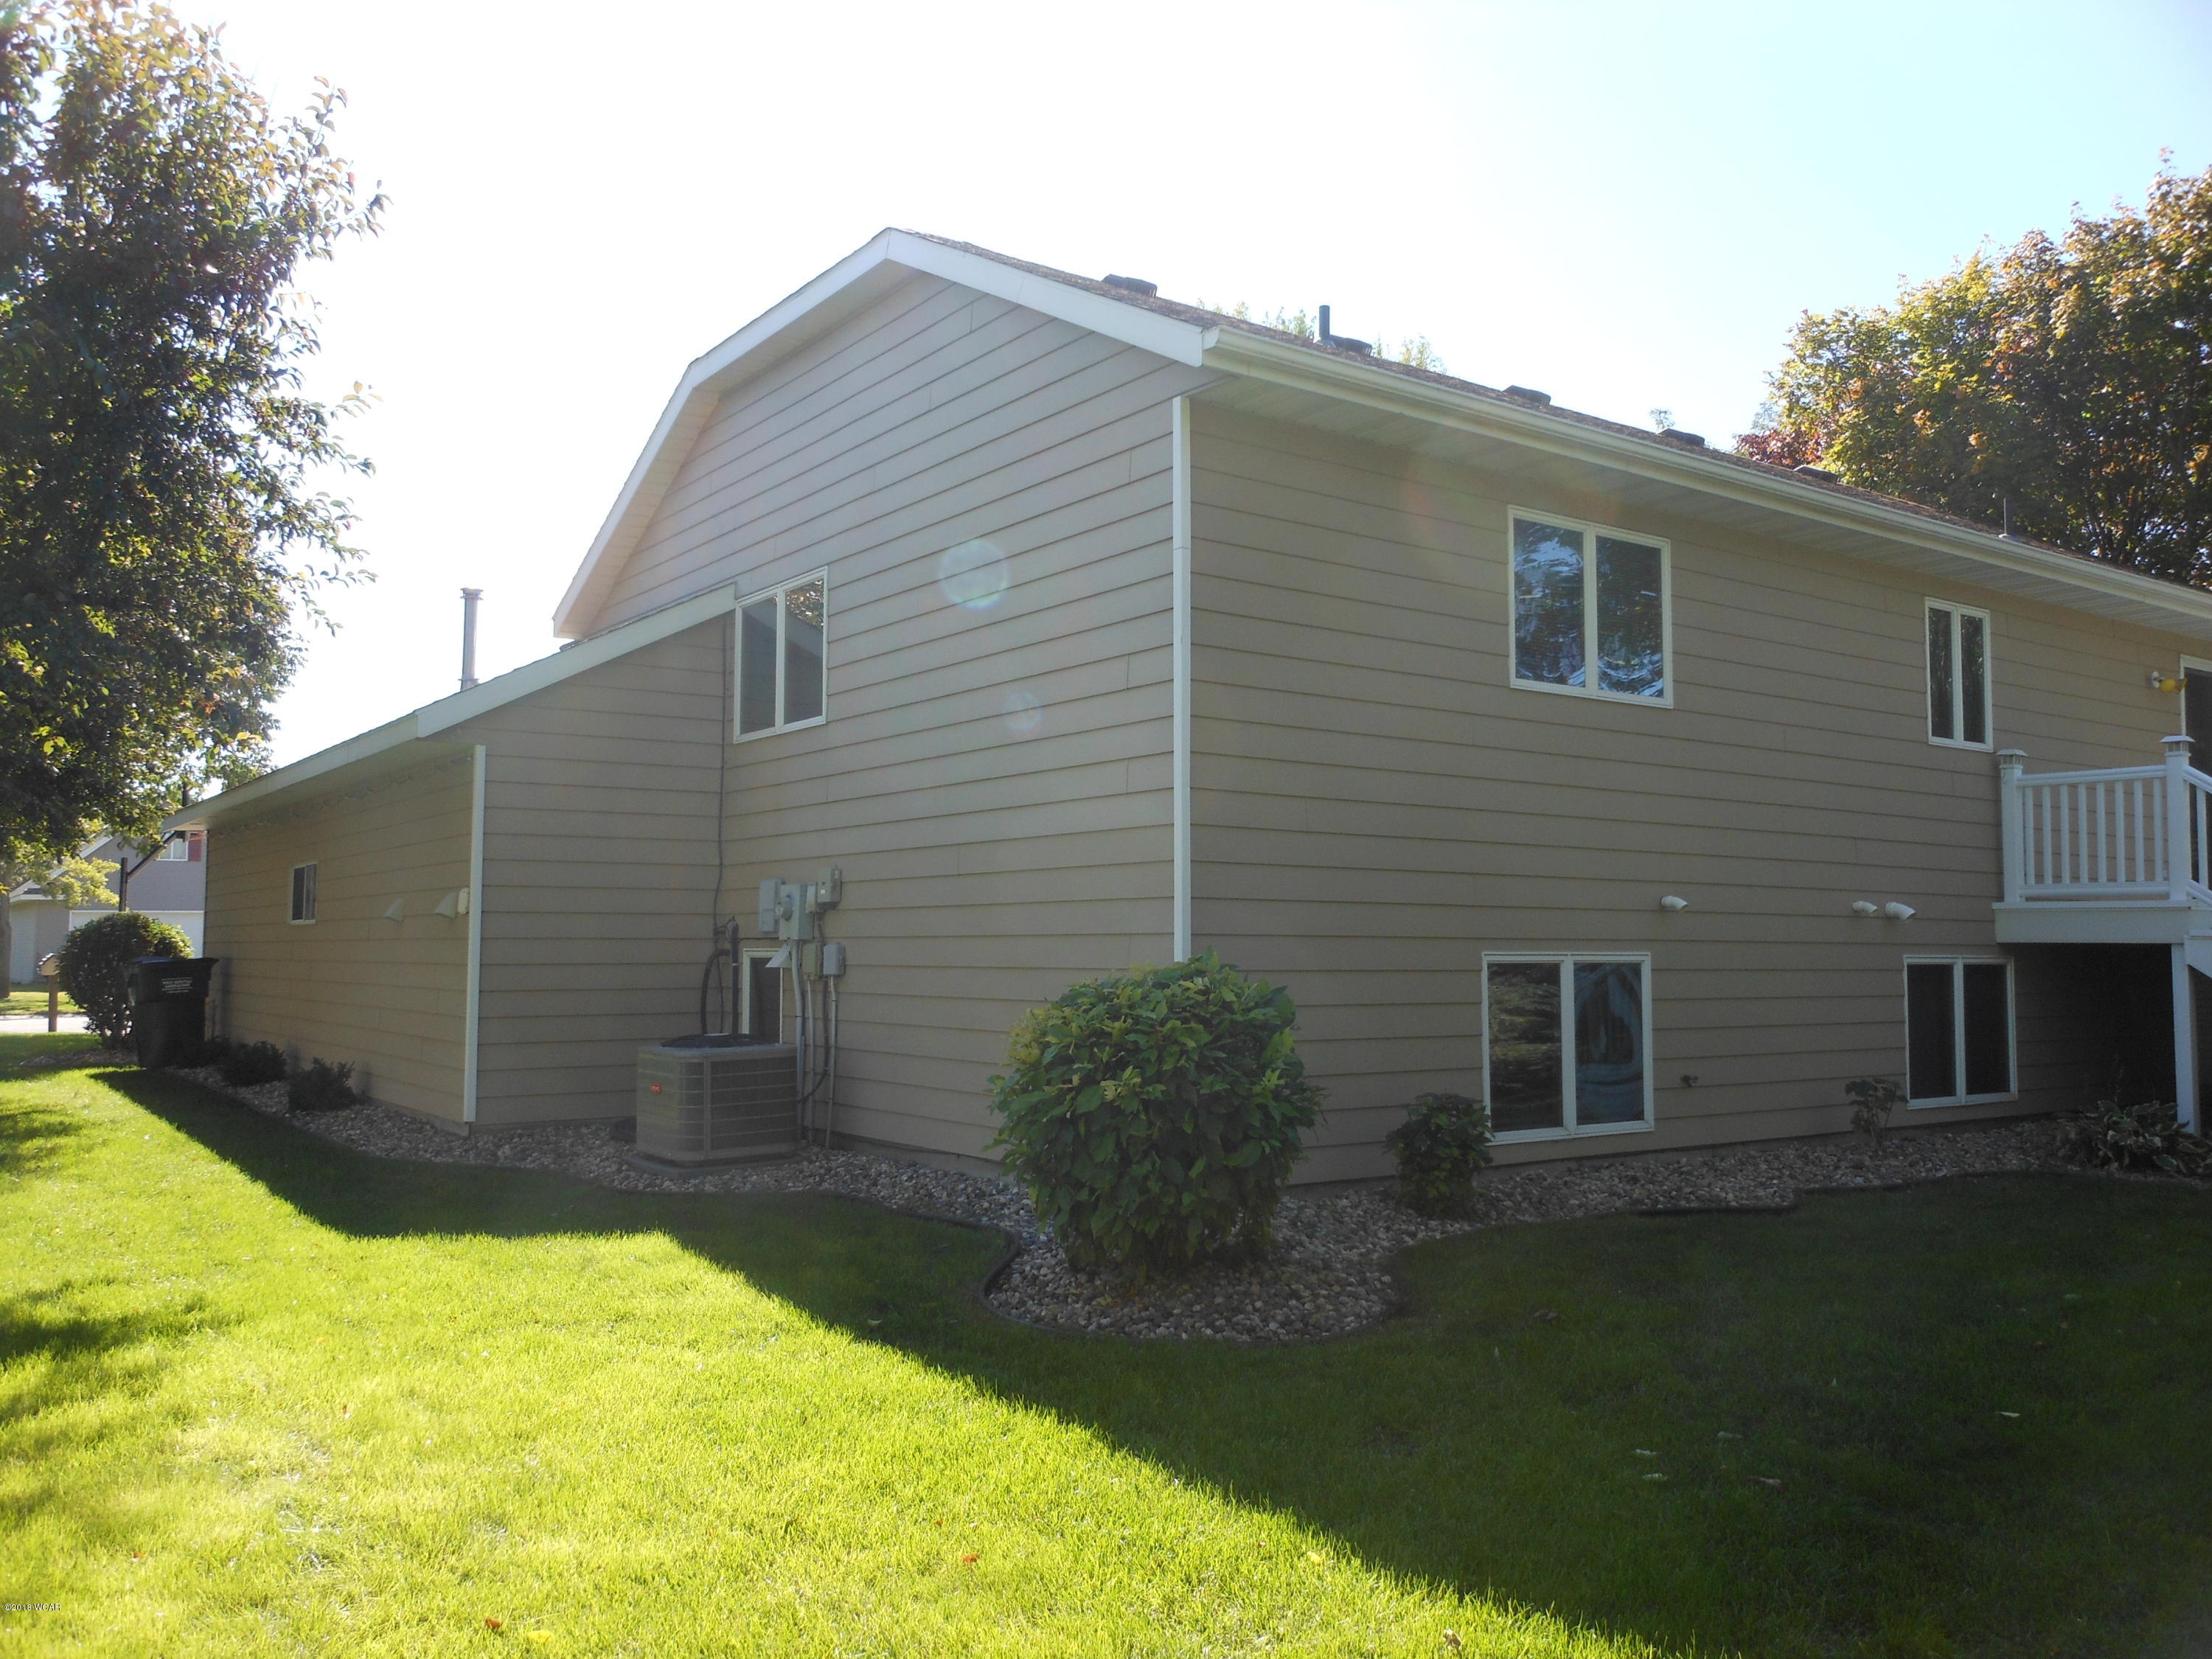 1900 Richland Avenue,Willmar,4 Bedrooms Bedrooms,2 BathroomsBathrooms,Single Family,Richland Avenue,6032483